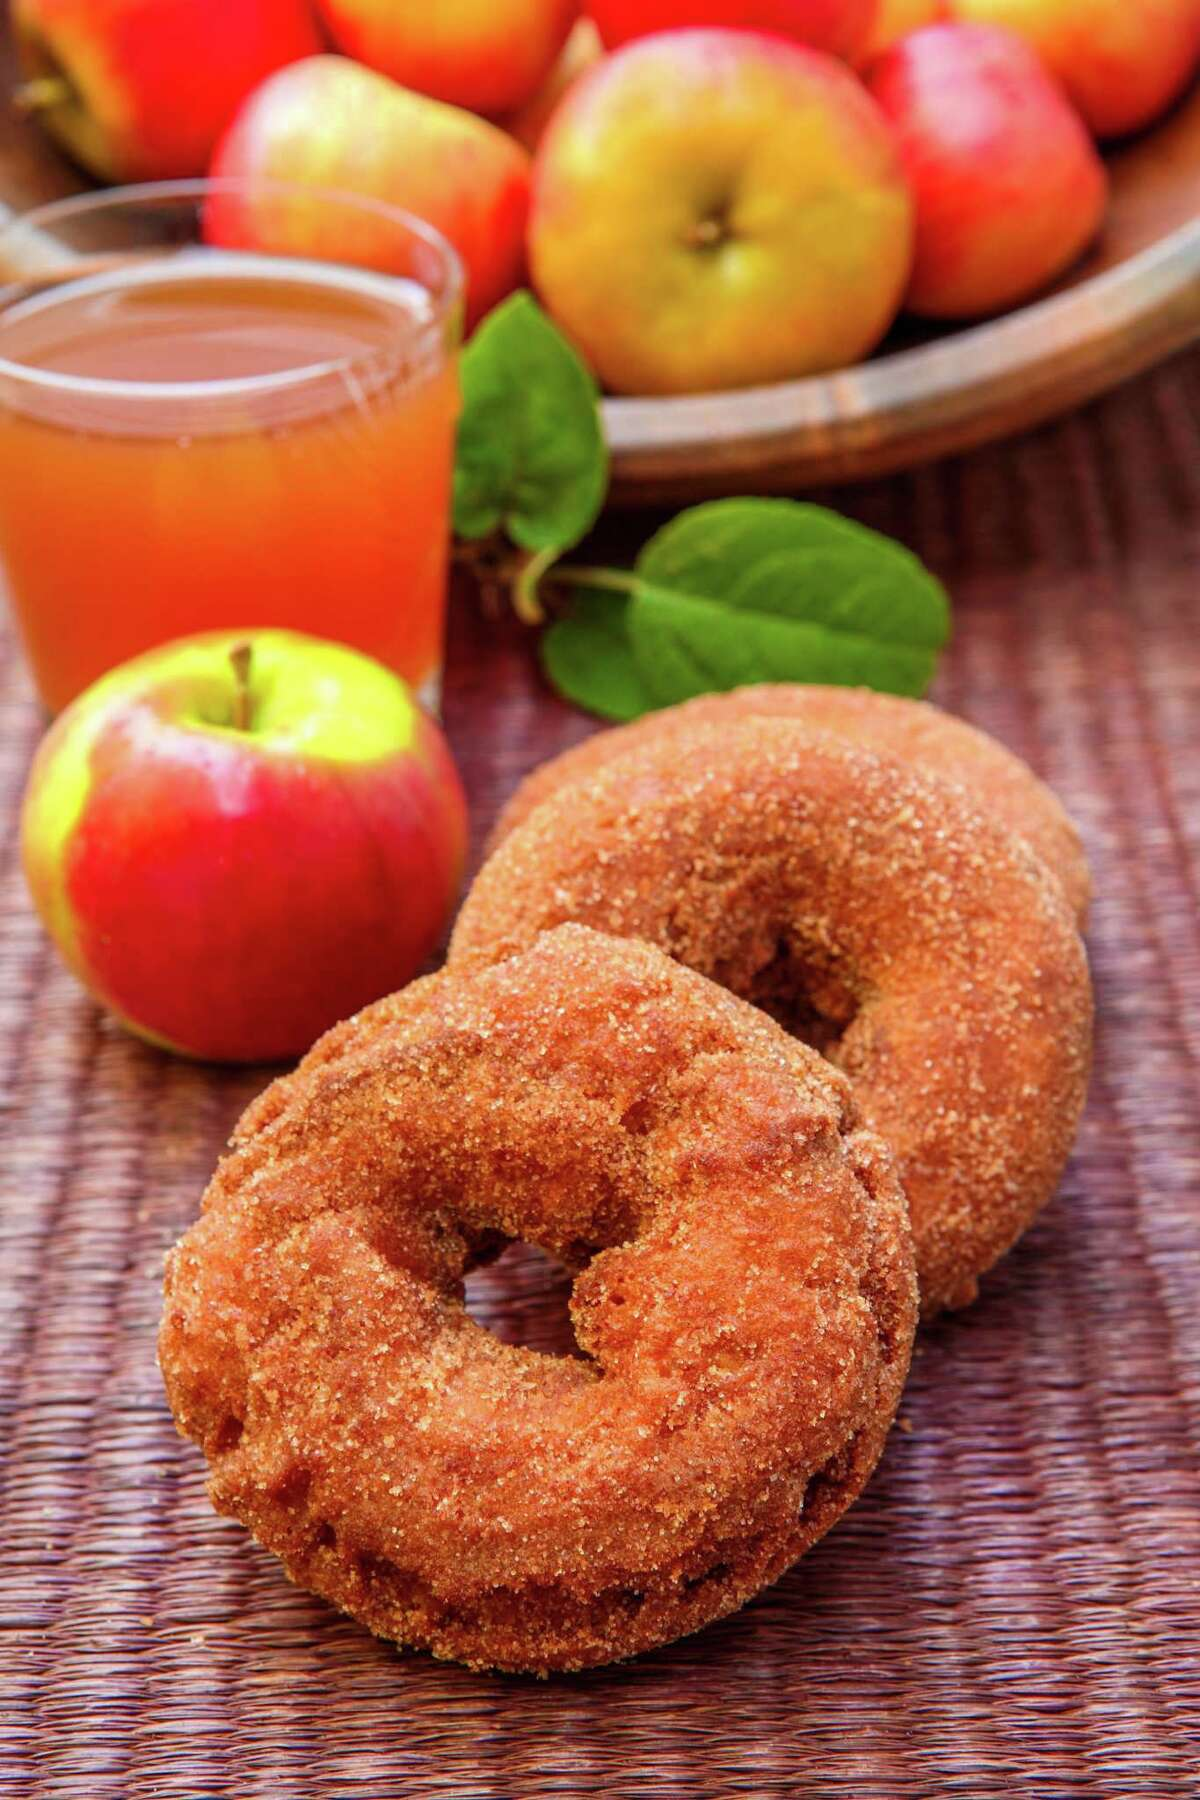 Apple cider doughnuts are a perfect September treat.